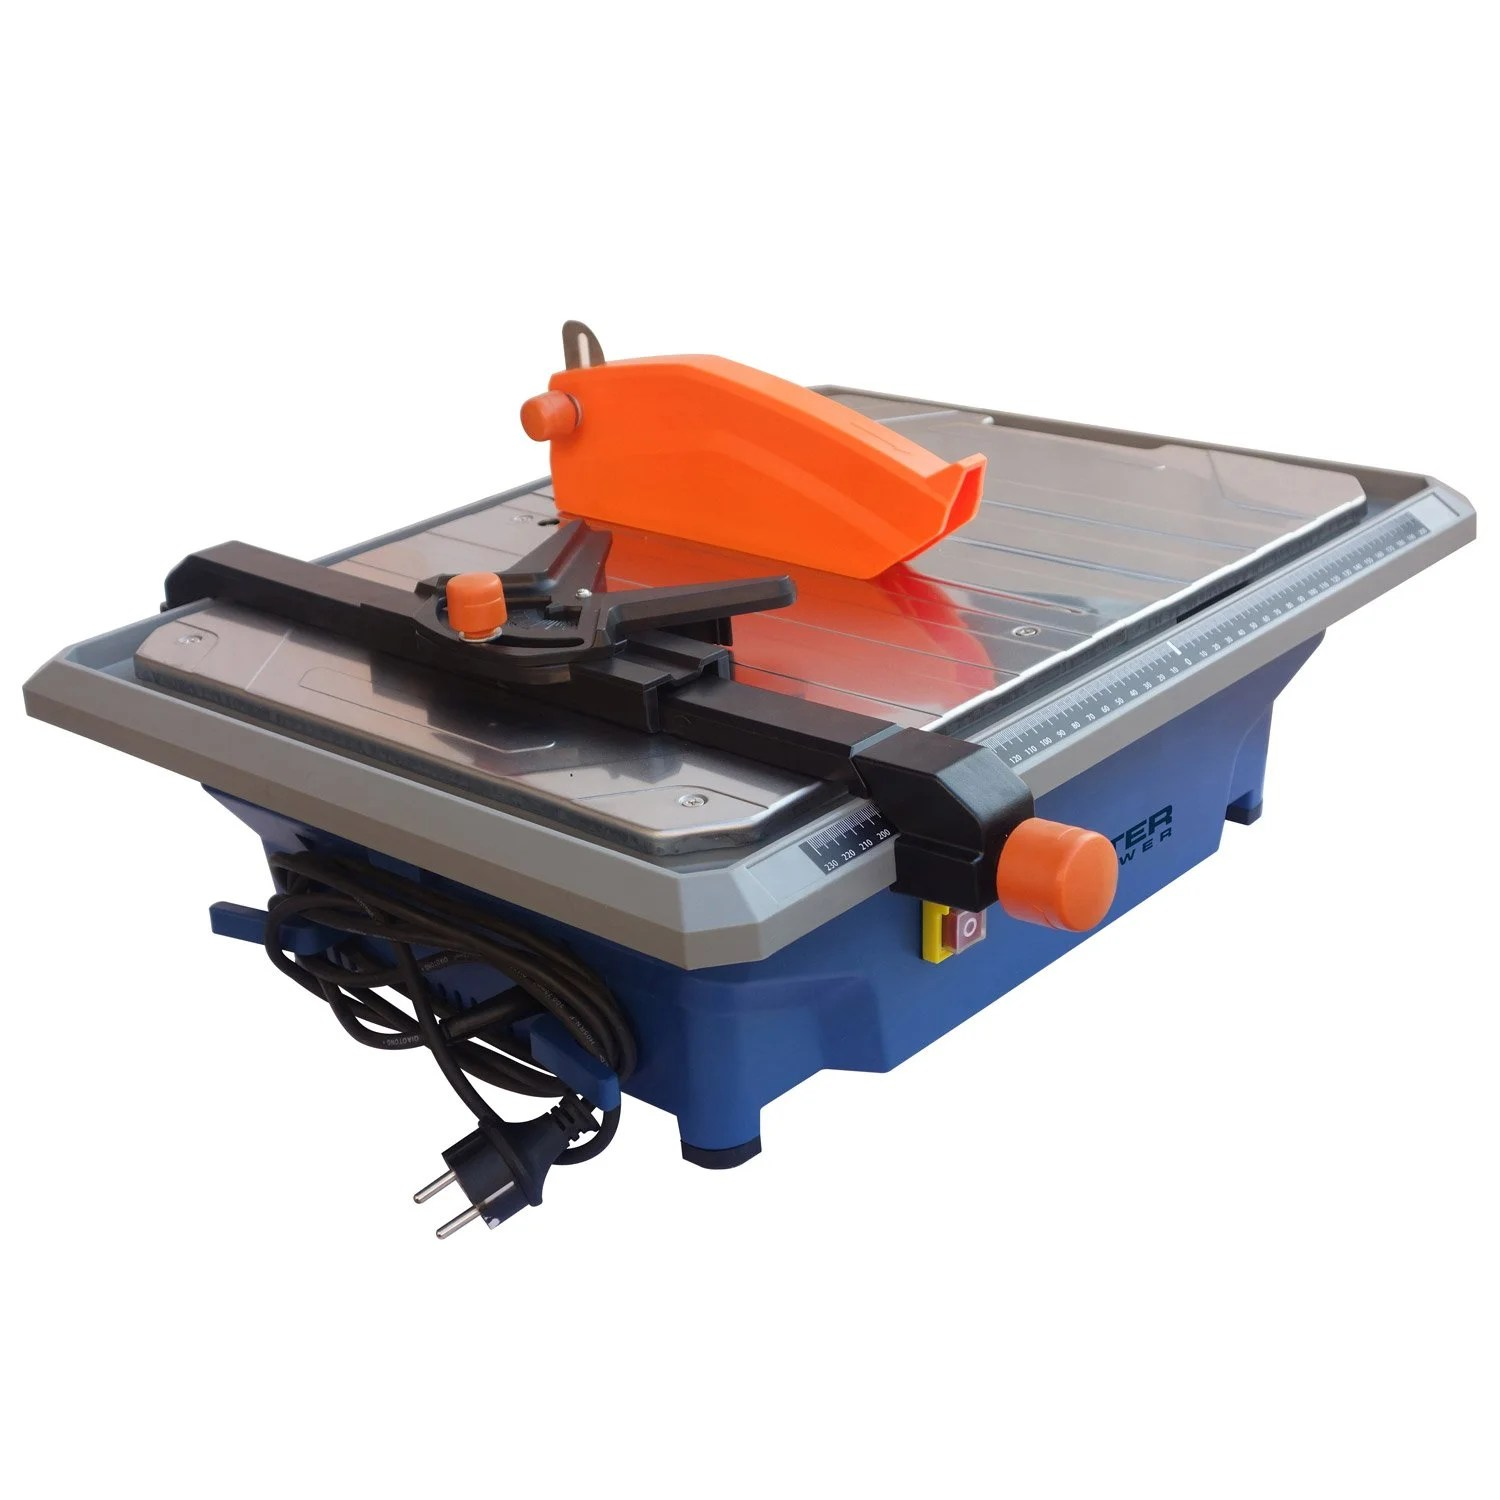 Coupe Carrelage Electrique Leroy Merlin Coupe Carreaux Electrique Dexter 800 W L 30 Mm Leroy Merlin